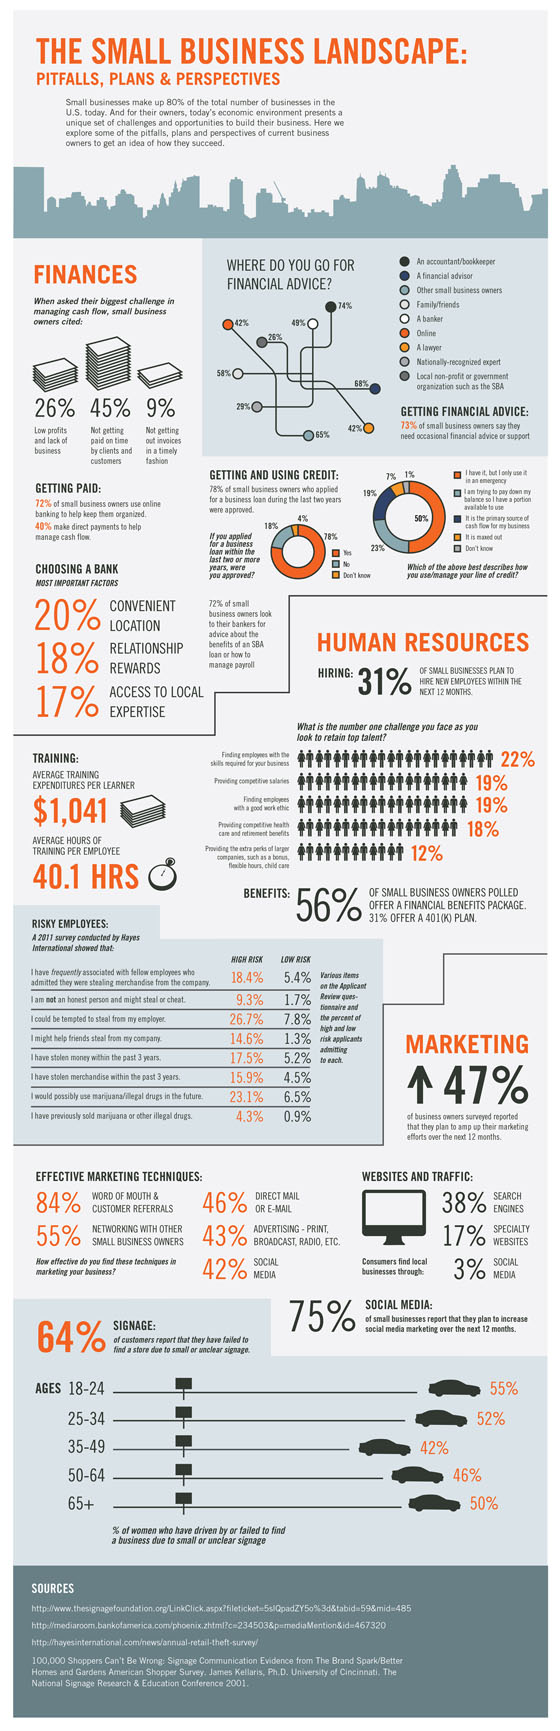 The Small Business Landscape [Infographic]